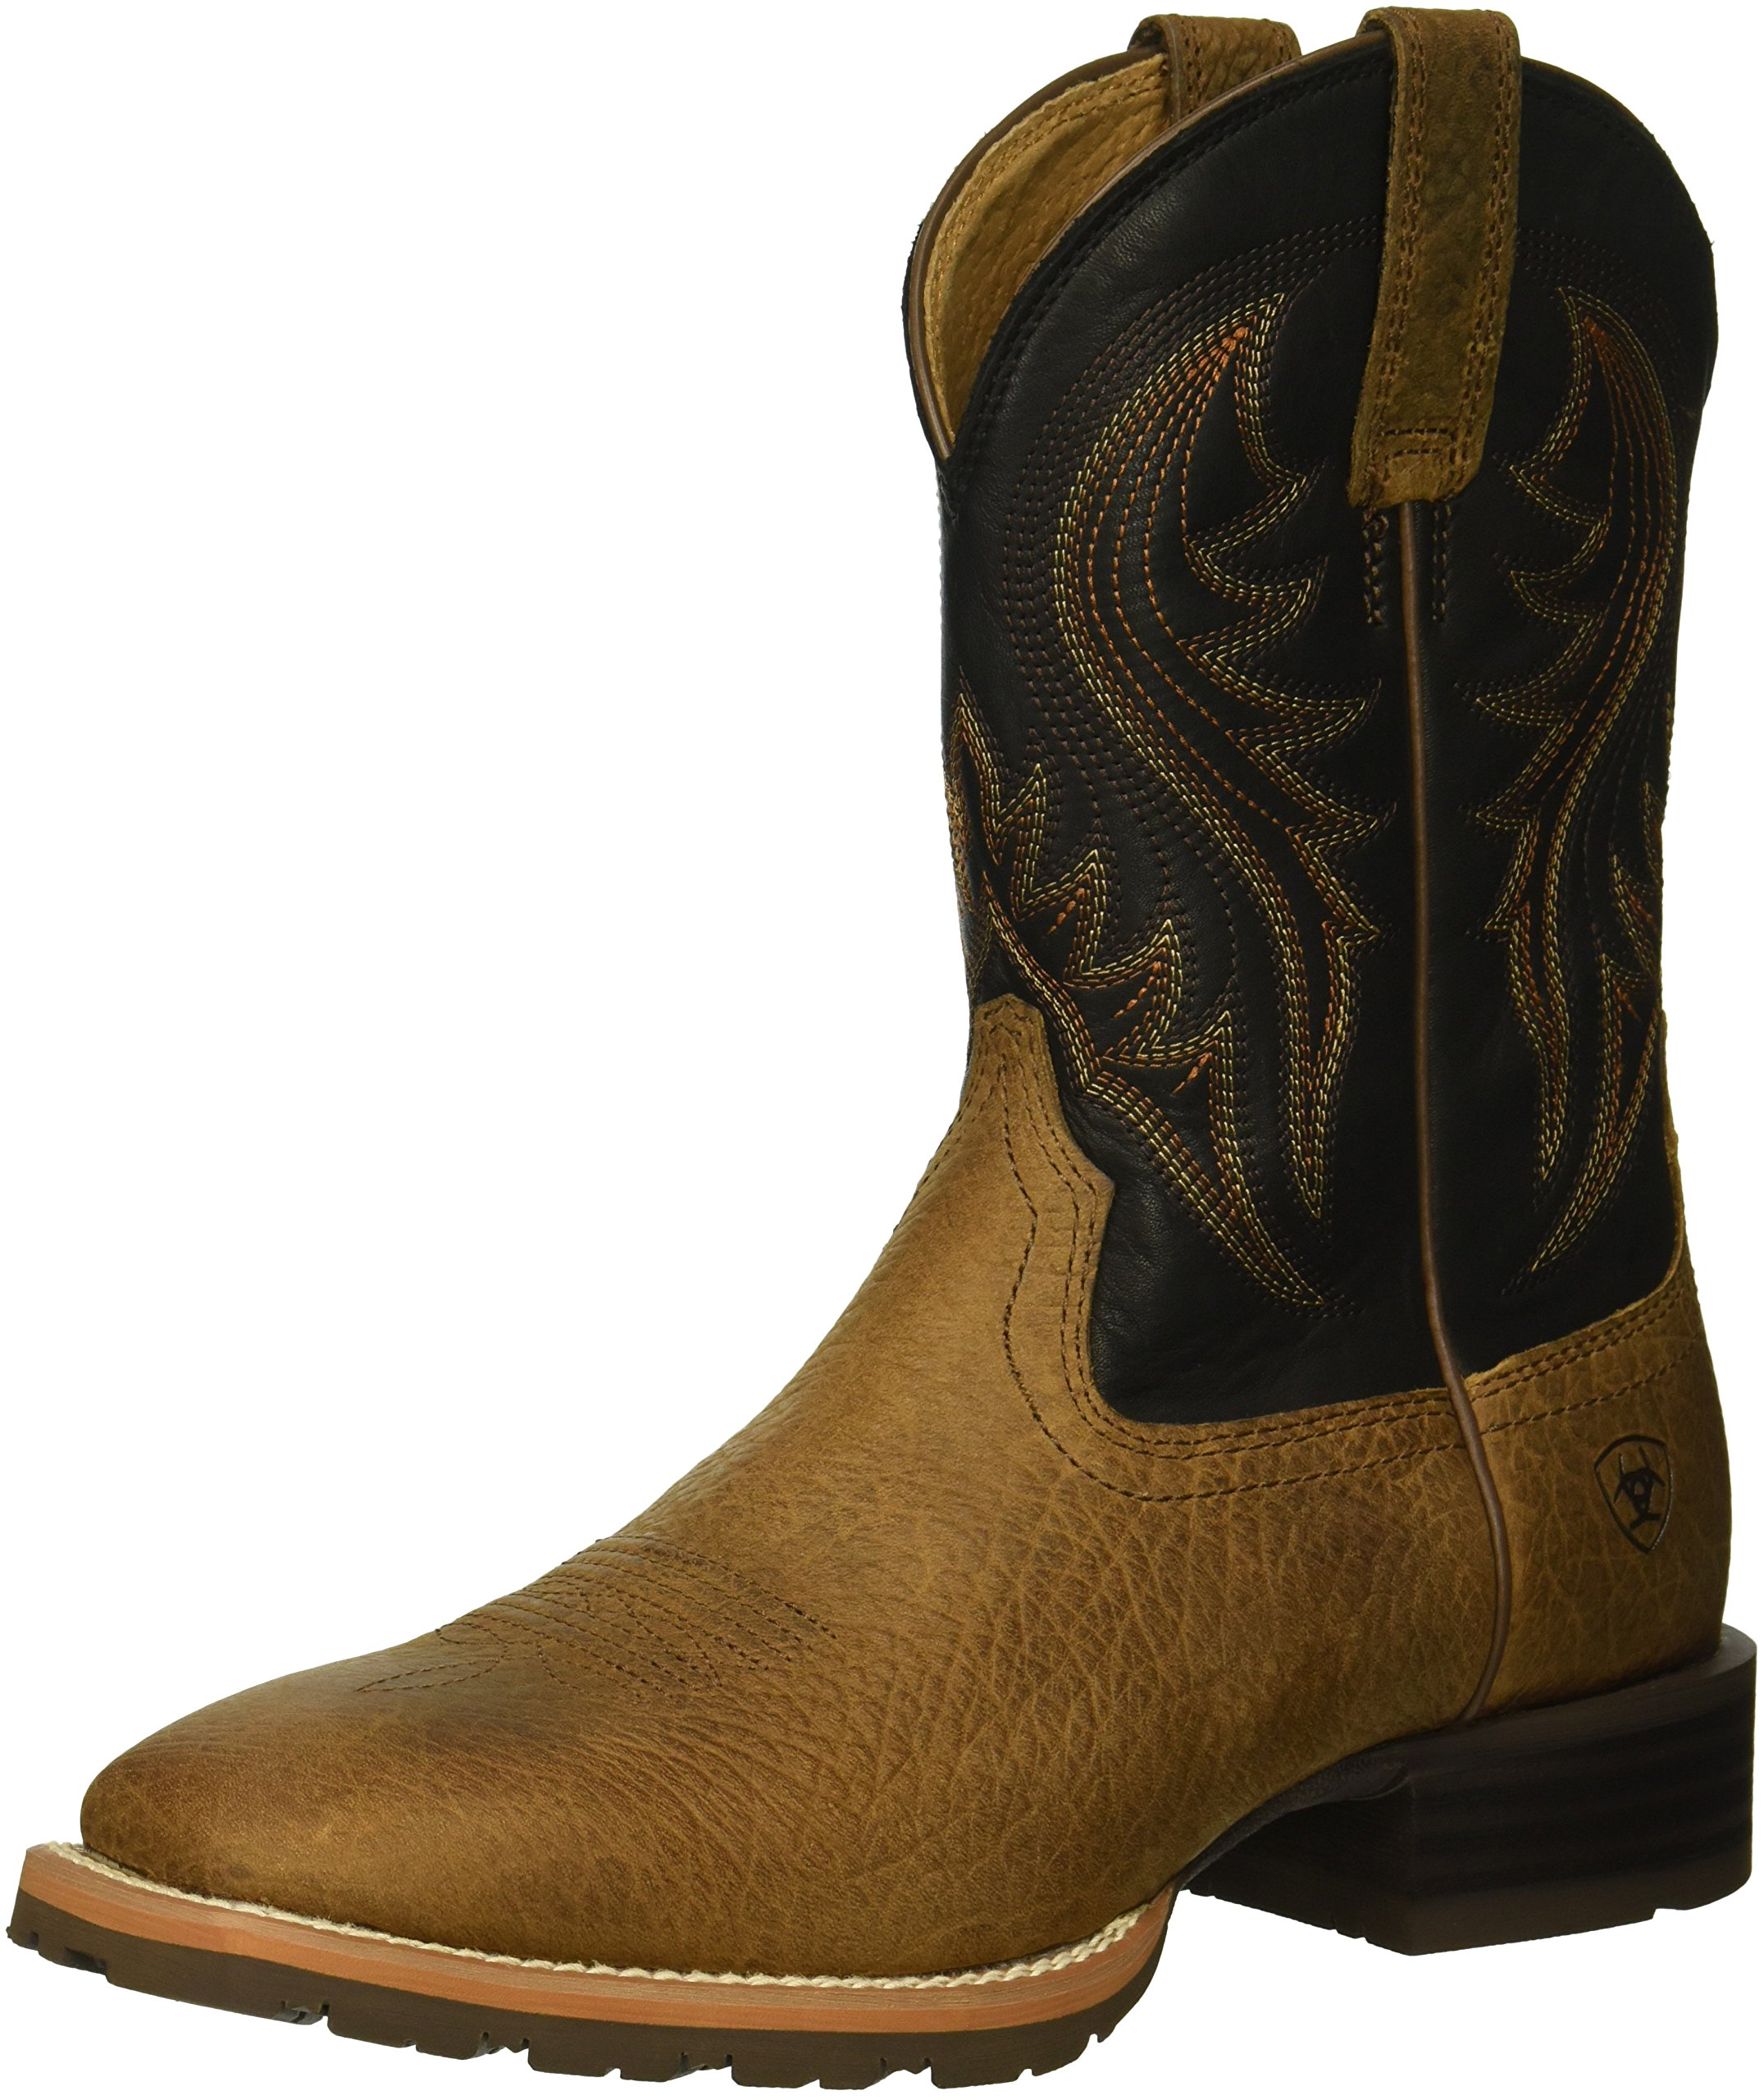 Ariat Men's Hybrid Rancher Western Boot, Earth, 10 D US